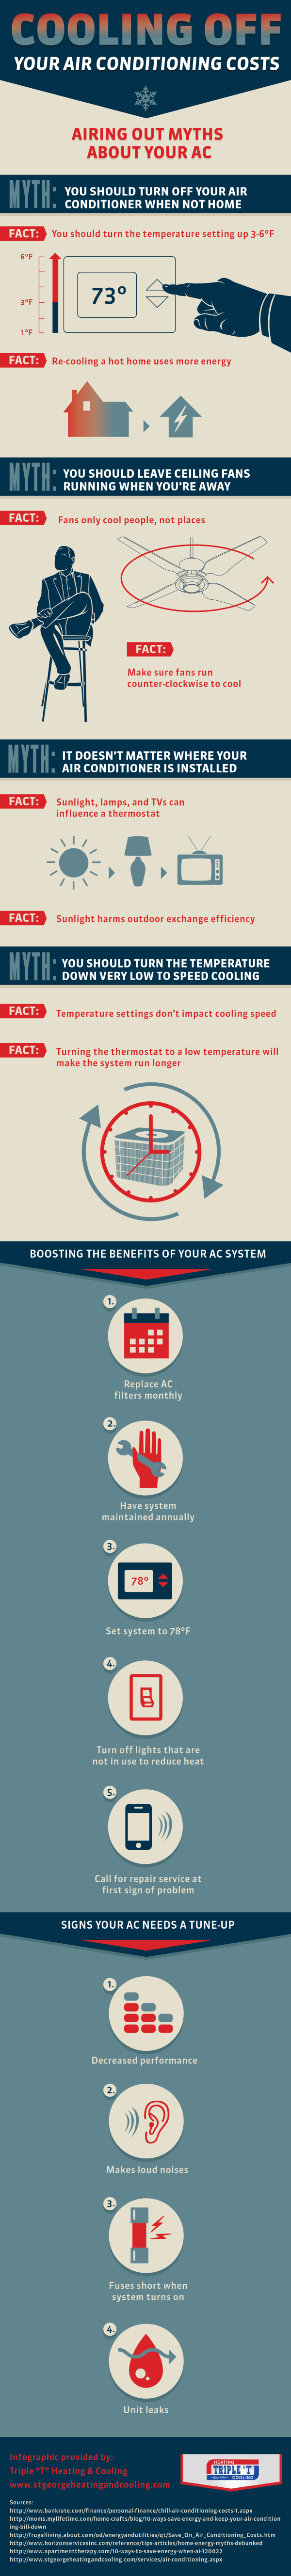 Cooling Off Your Air Conditioning Costs Infographic Triple T